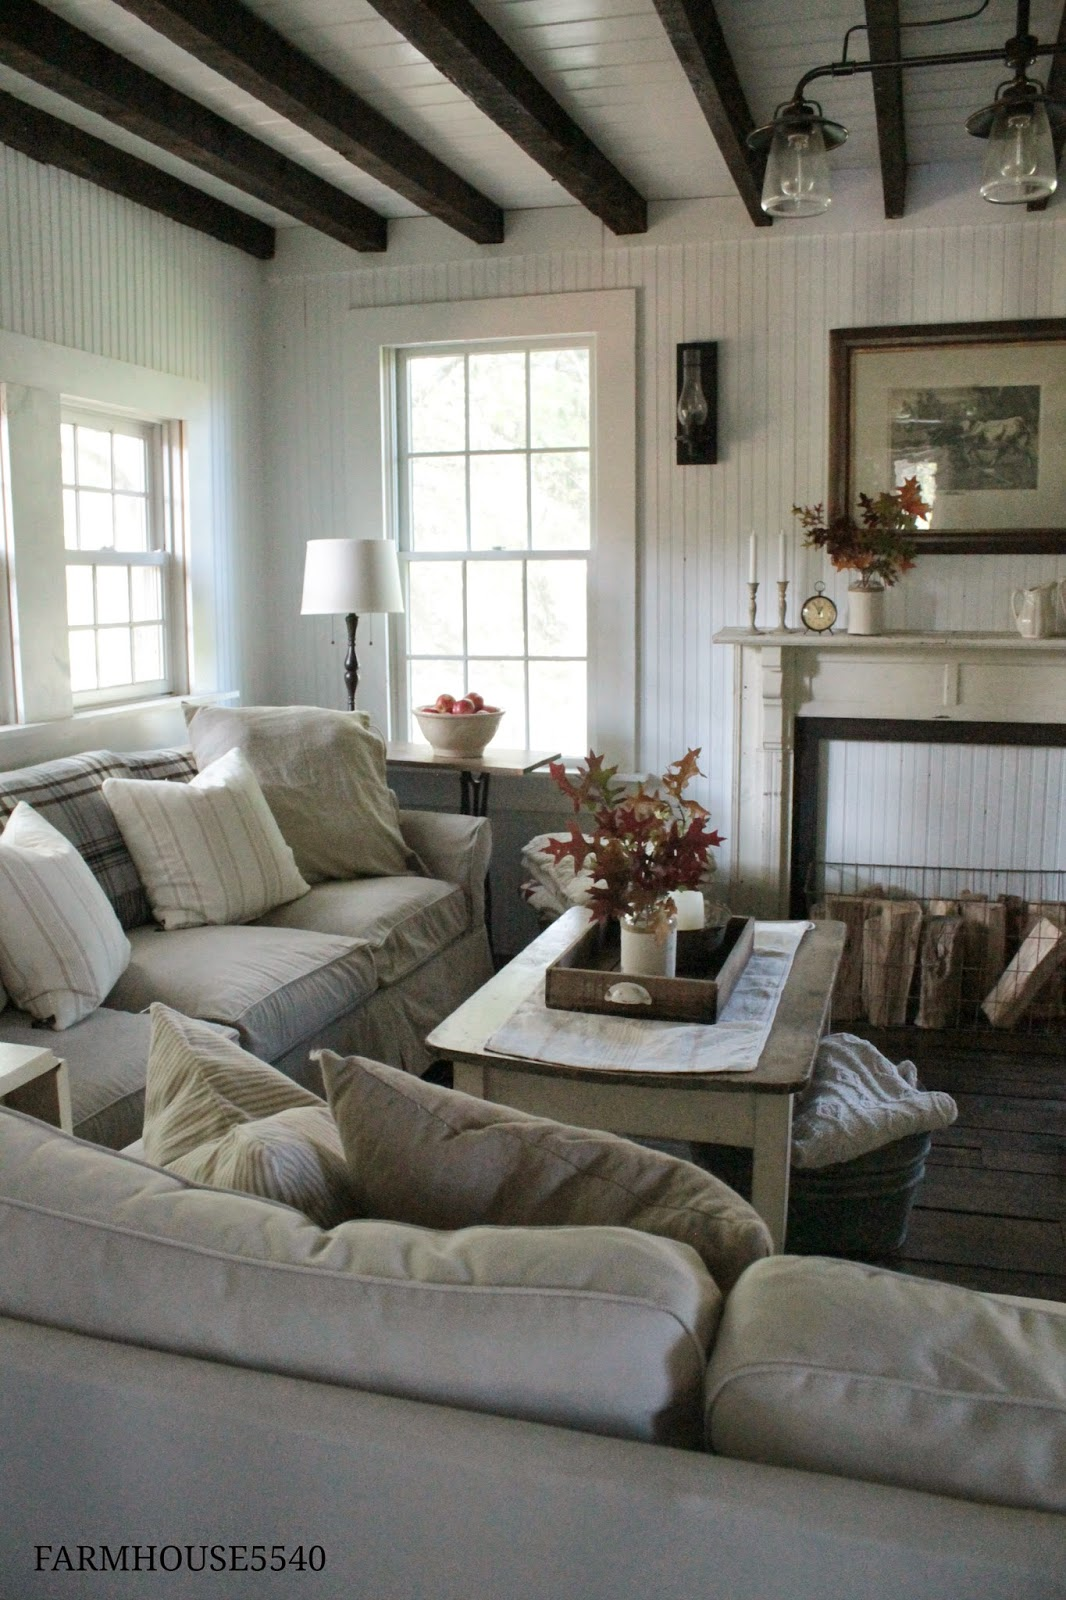 Living Room Decor Trends 2018: FARMHOUSE 5540: Autumn In The Family Room